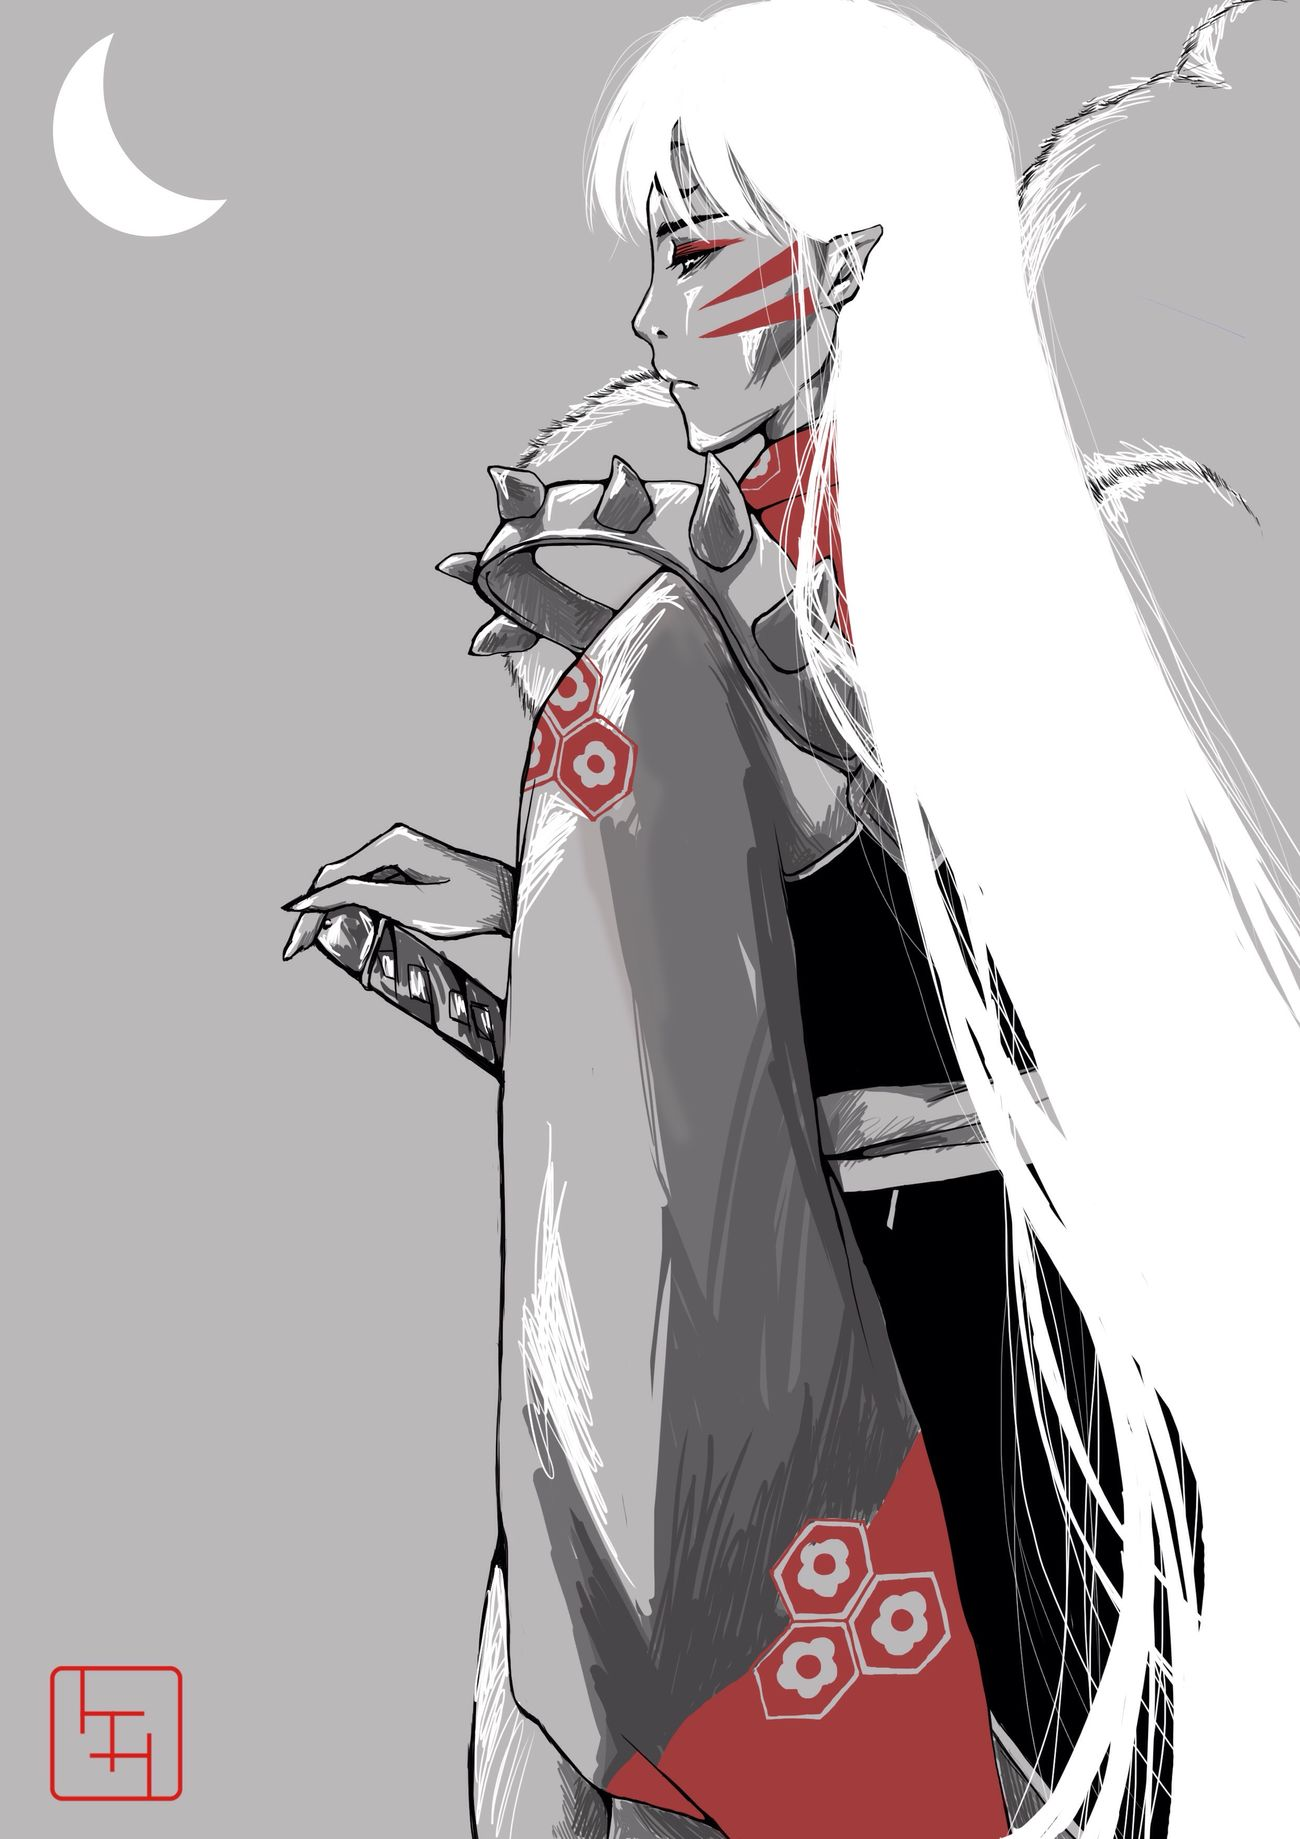 Art MyArt Anime Manga Inuyasha Fanart Digital Art My Art Sesshomaru